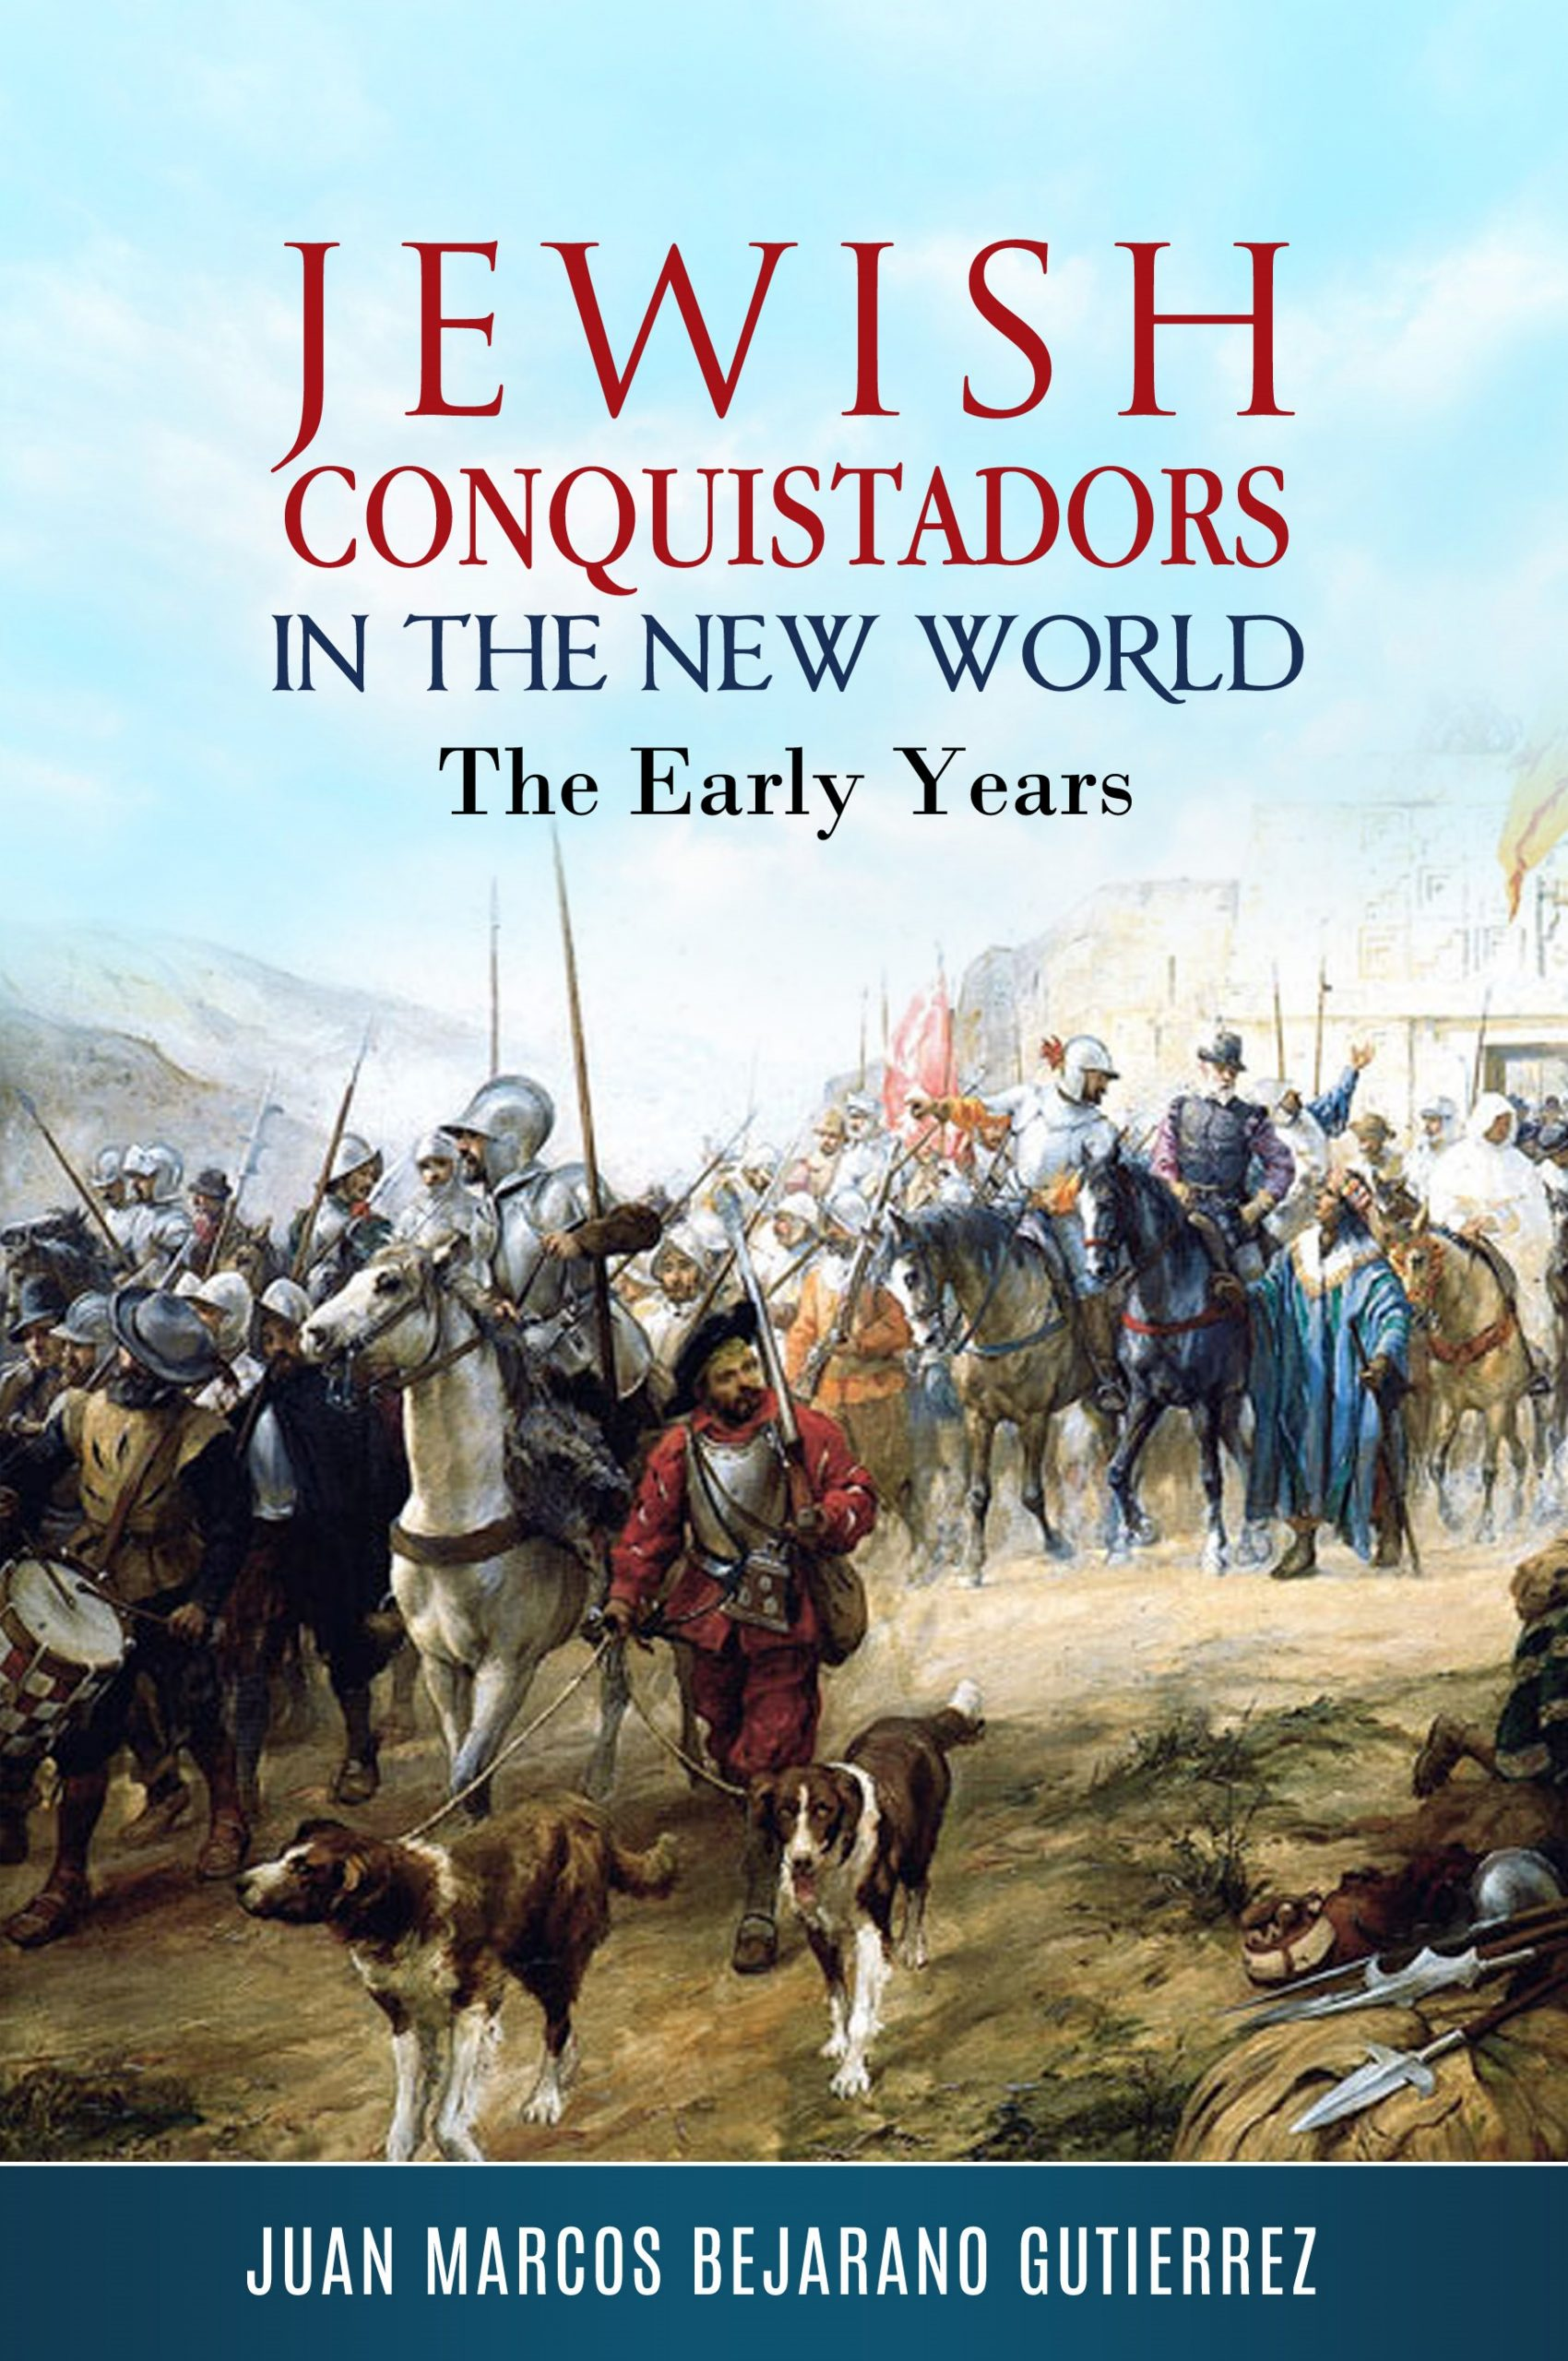 Jewish Conquistador in the New World